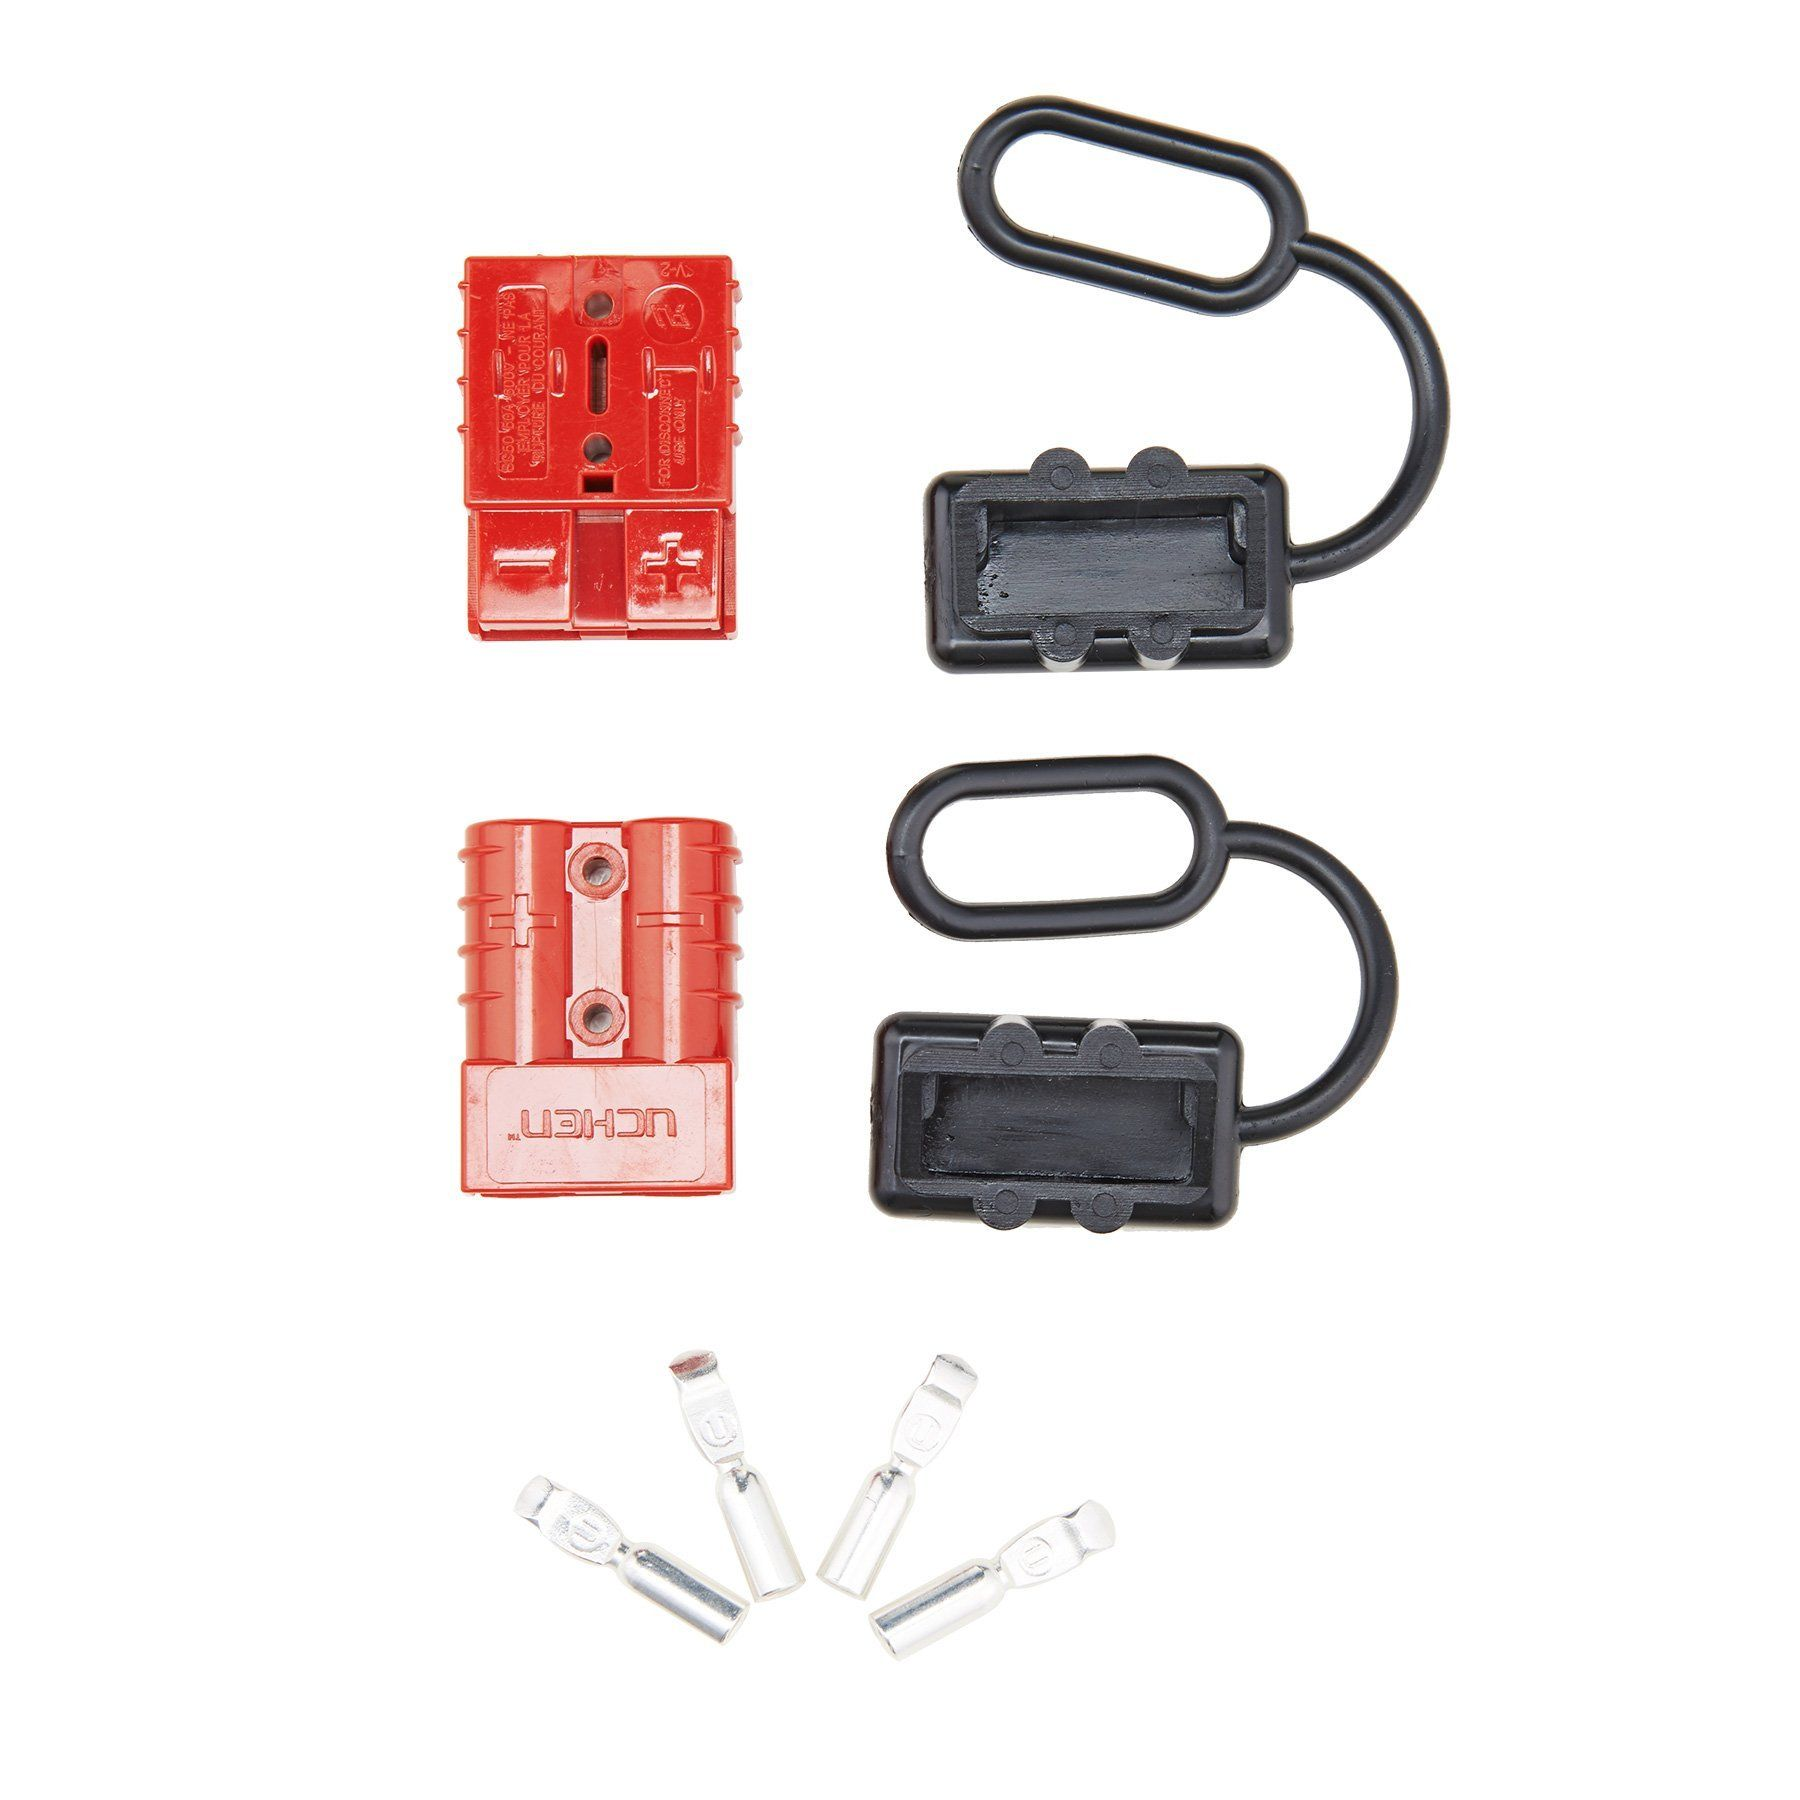 orion motor tech 68 gauge battery quick connect disconnect wire harness plug kit for recovery [ 1800 x 1800 Pixel ]